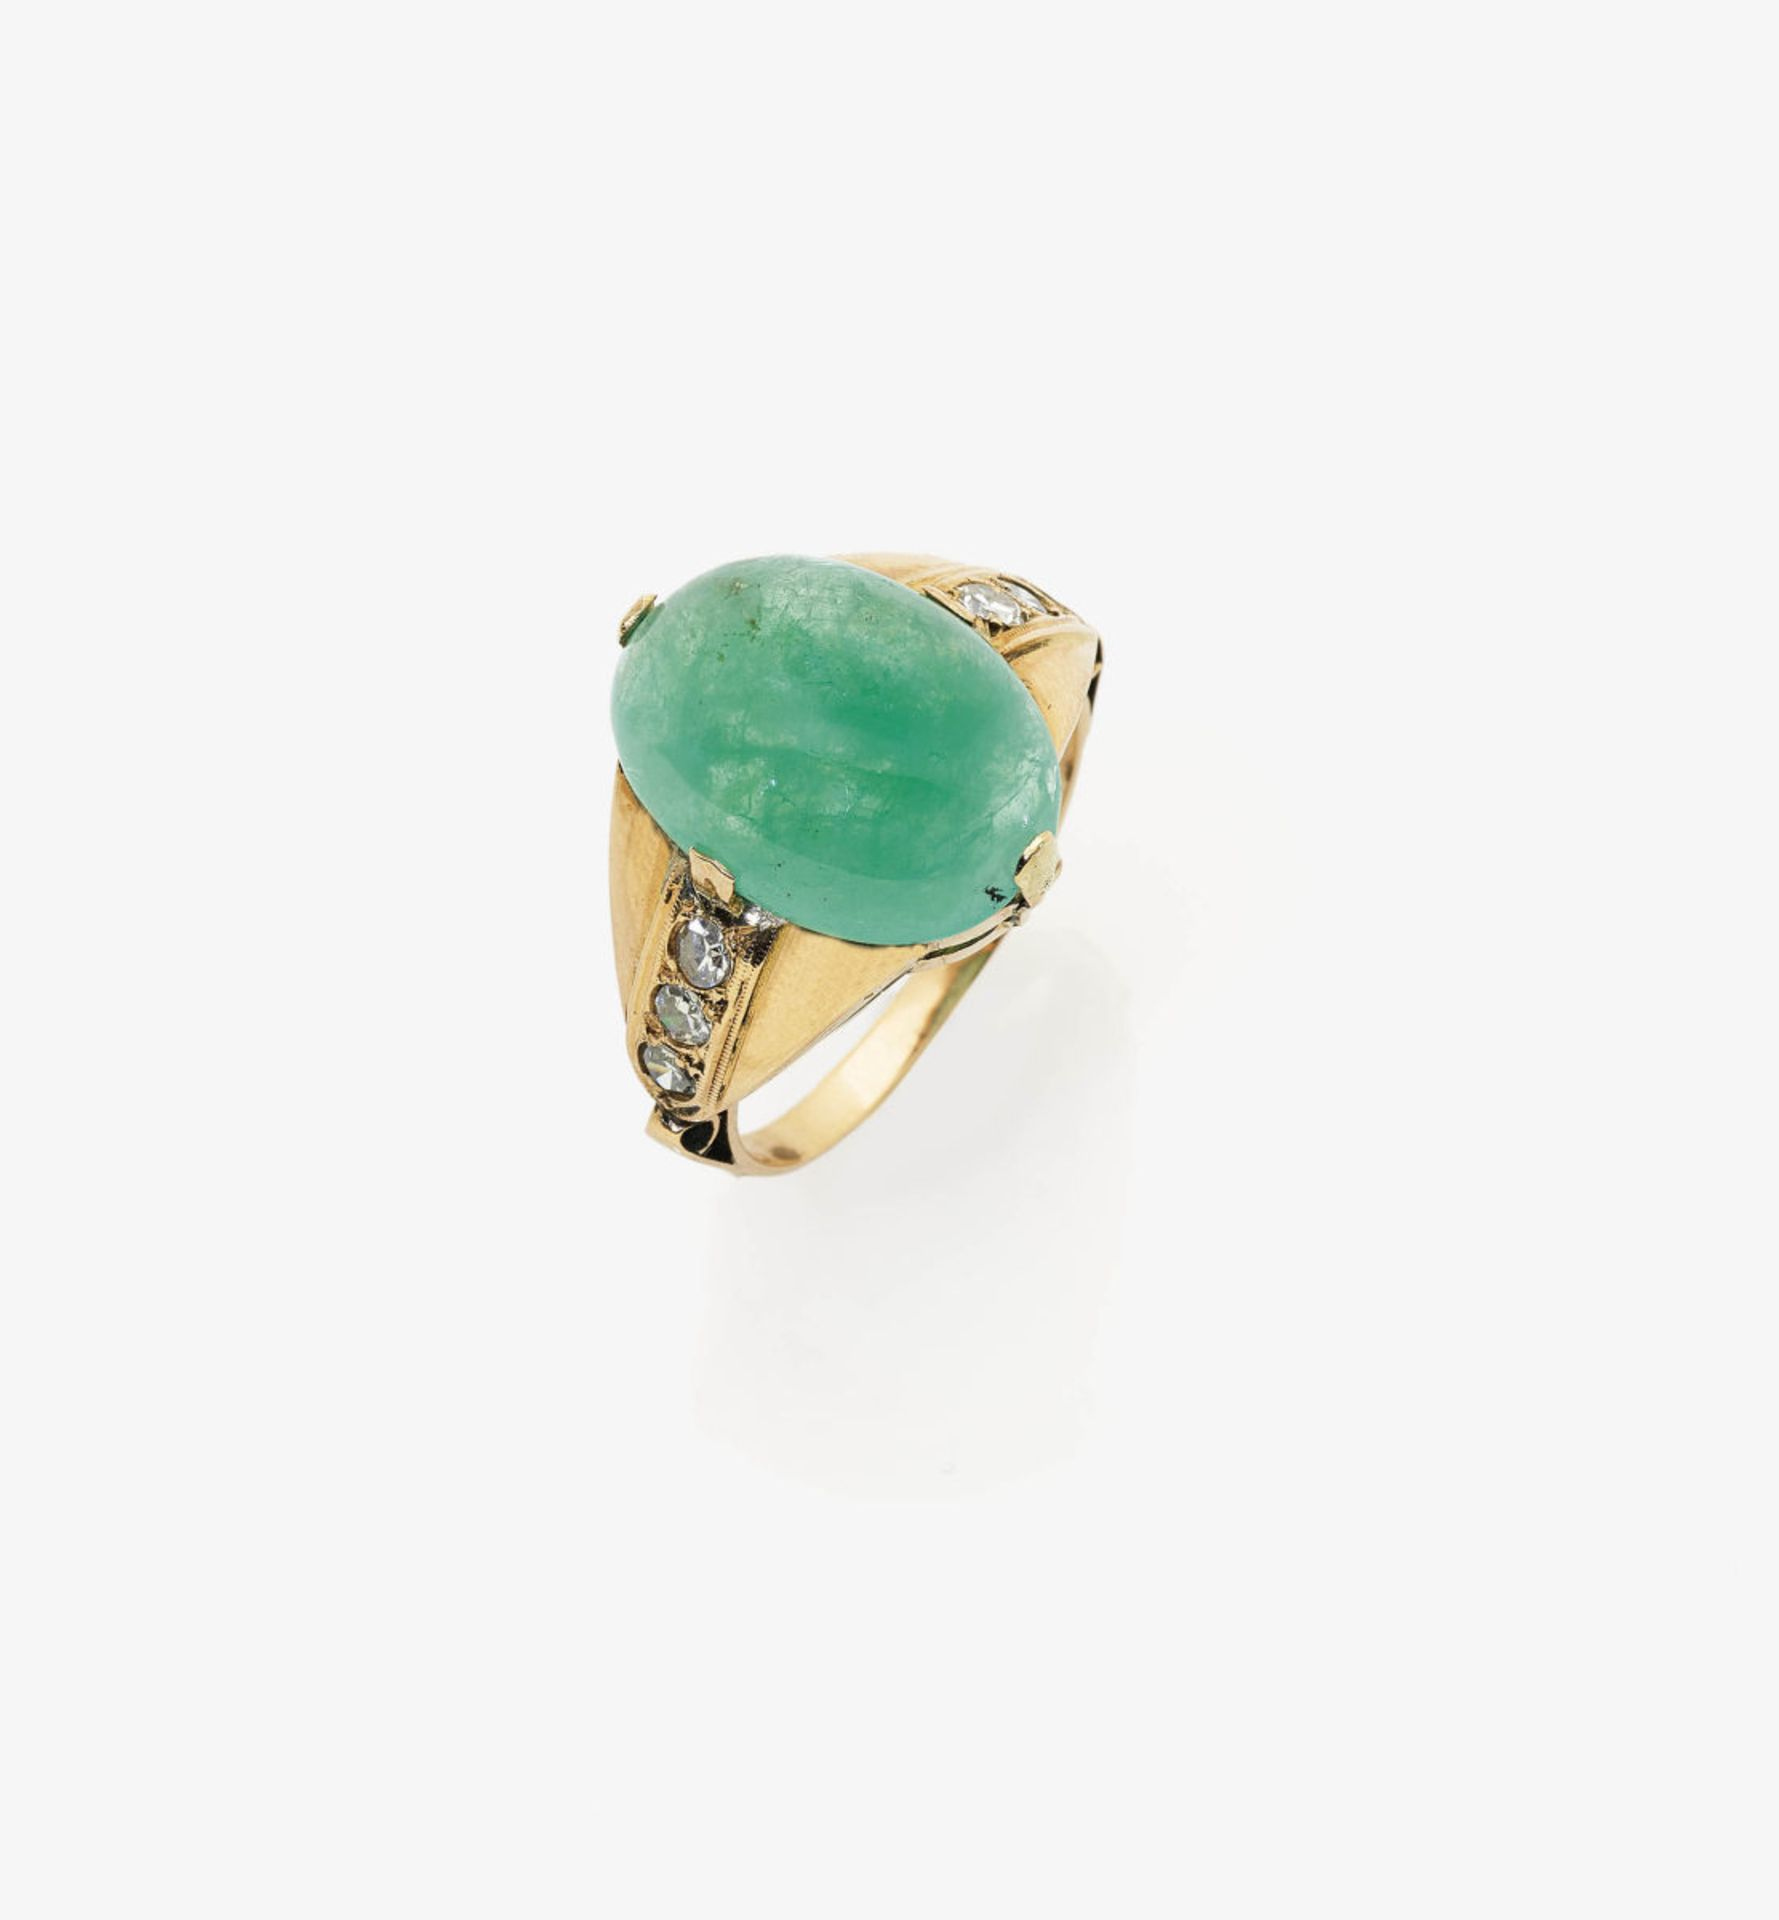 Los 1060 - An Emerald and Diamond Ring